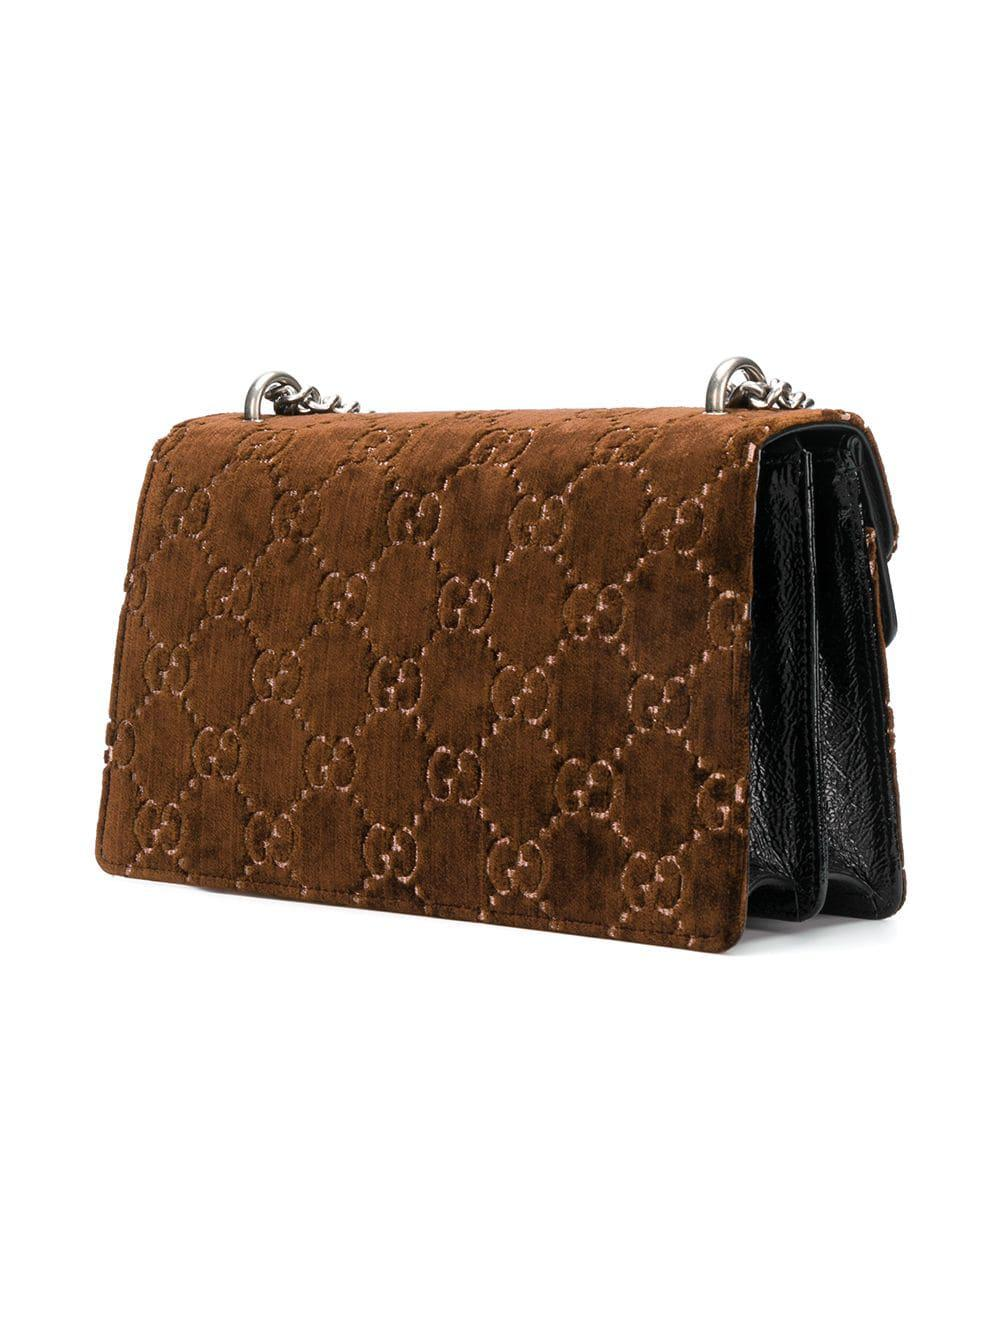 6b86e117b78 Gucci - Brown Dionysus GG Velvet Small Shoulder Bag - Lyst. View fullscreen